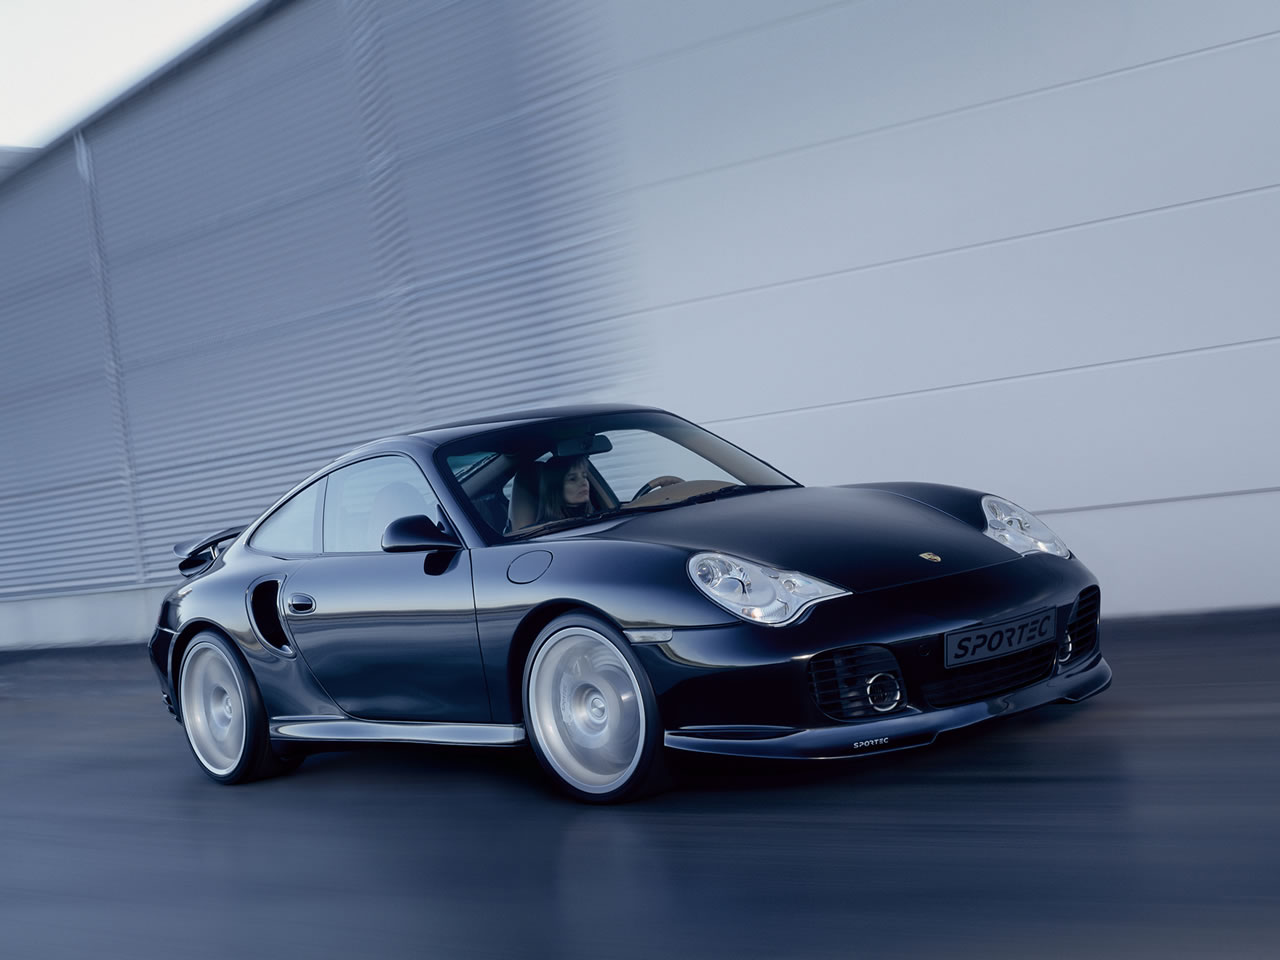 porsche 911 turbo (996) 2000 models #4